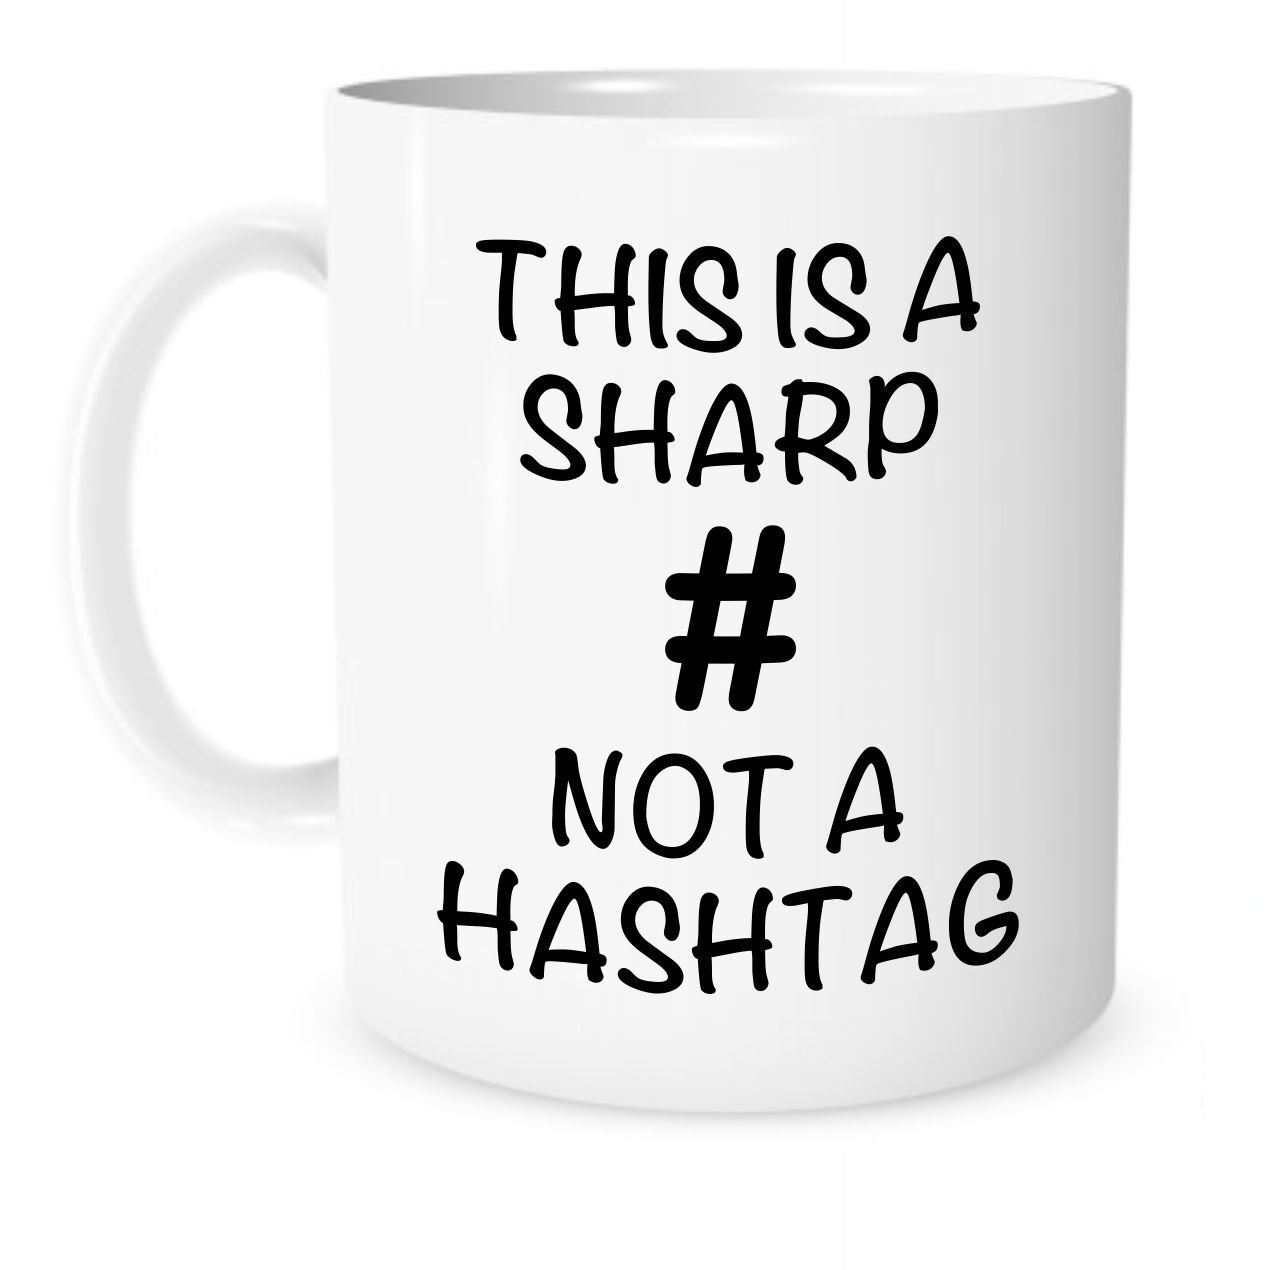 The Coffee Corner - This Is A Sharp Not A Hashtag Music Mug - 11 Ounce White Ceramic Coffee or Tea Mug - Gift for Music Teacher - Piano Teacher - Christmas Present - Guitar Teacher The Coffee Corner TM SYNCHKG120084